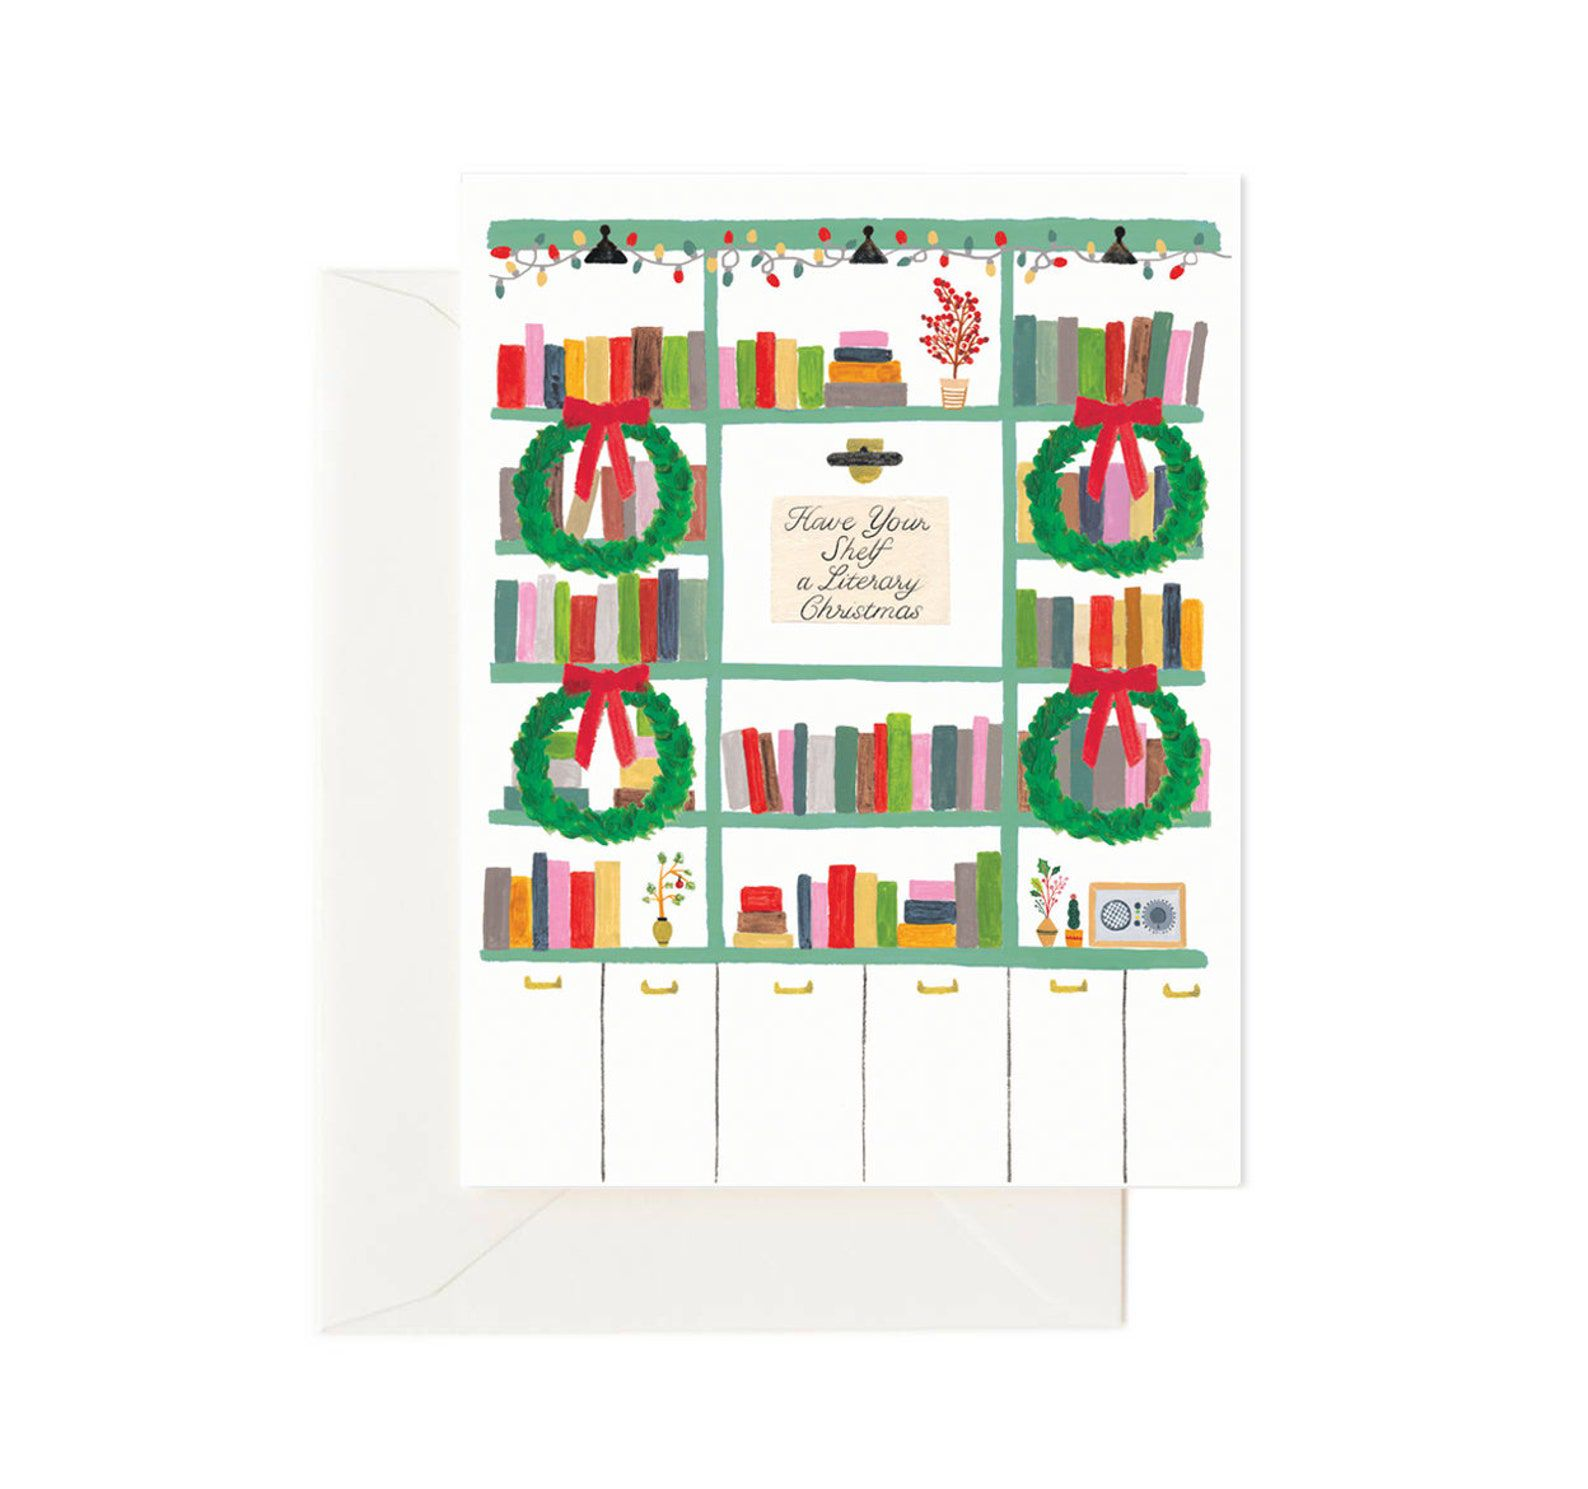 """A card with a painting of colorful book shelves decorated for Christmas and a message that reads """"Have your shelf a literary Christmas"""""""